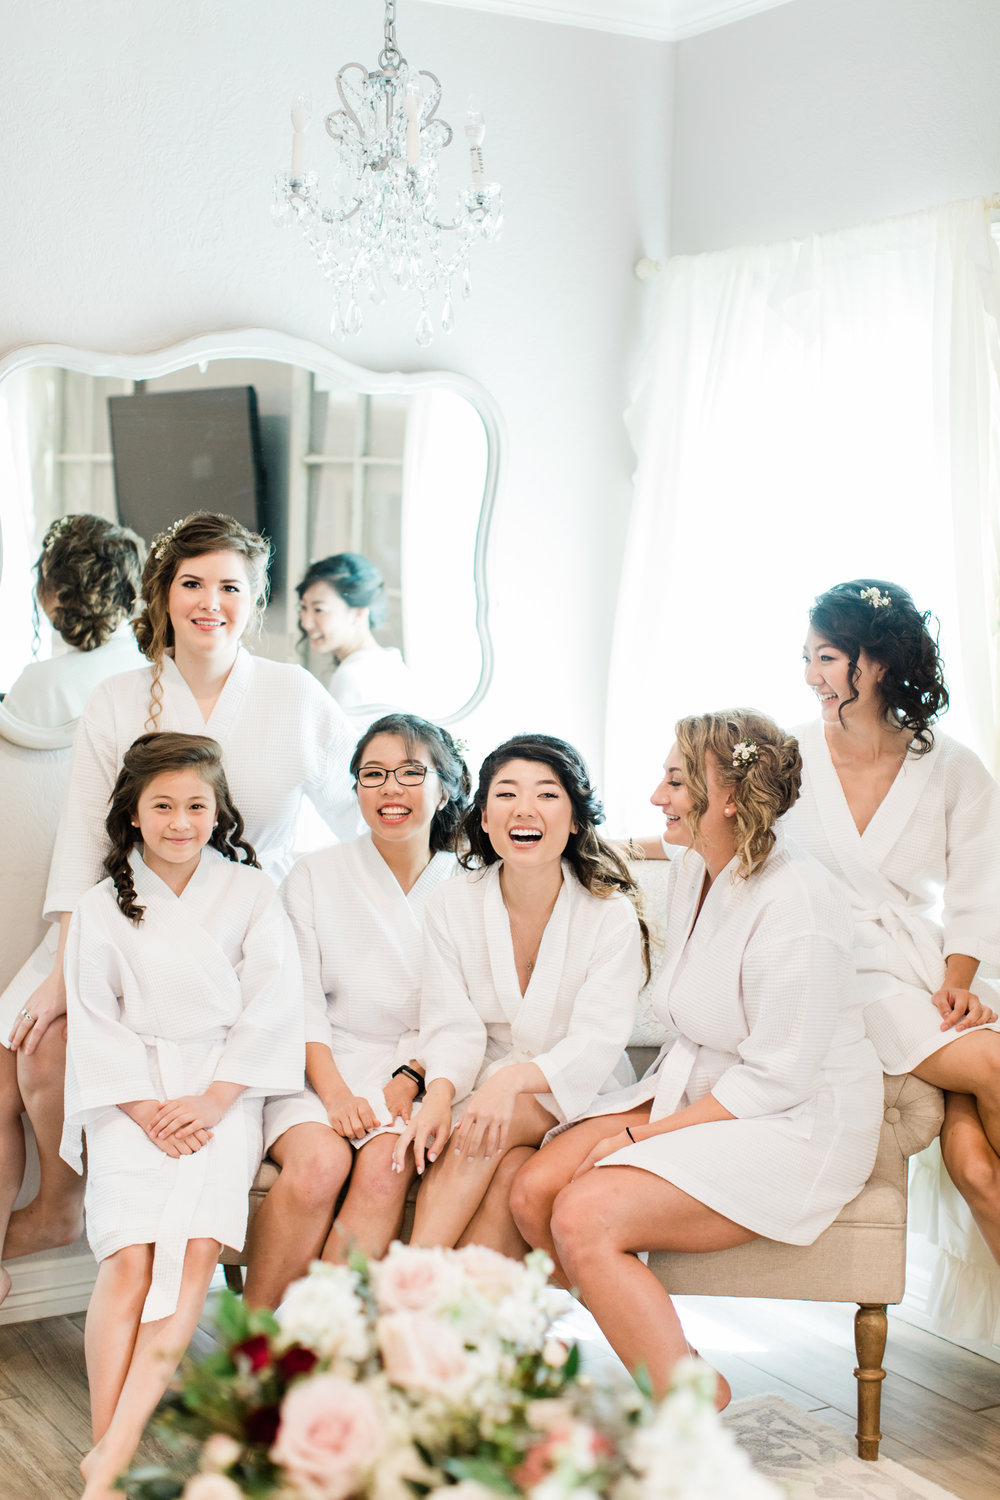 getting ready with bridesmaids.jpg